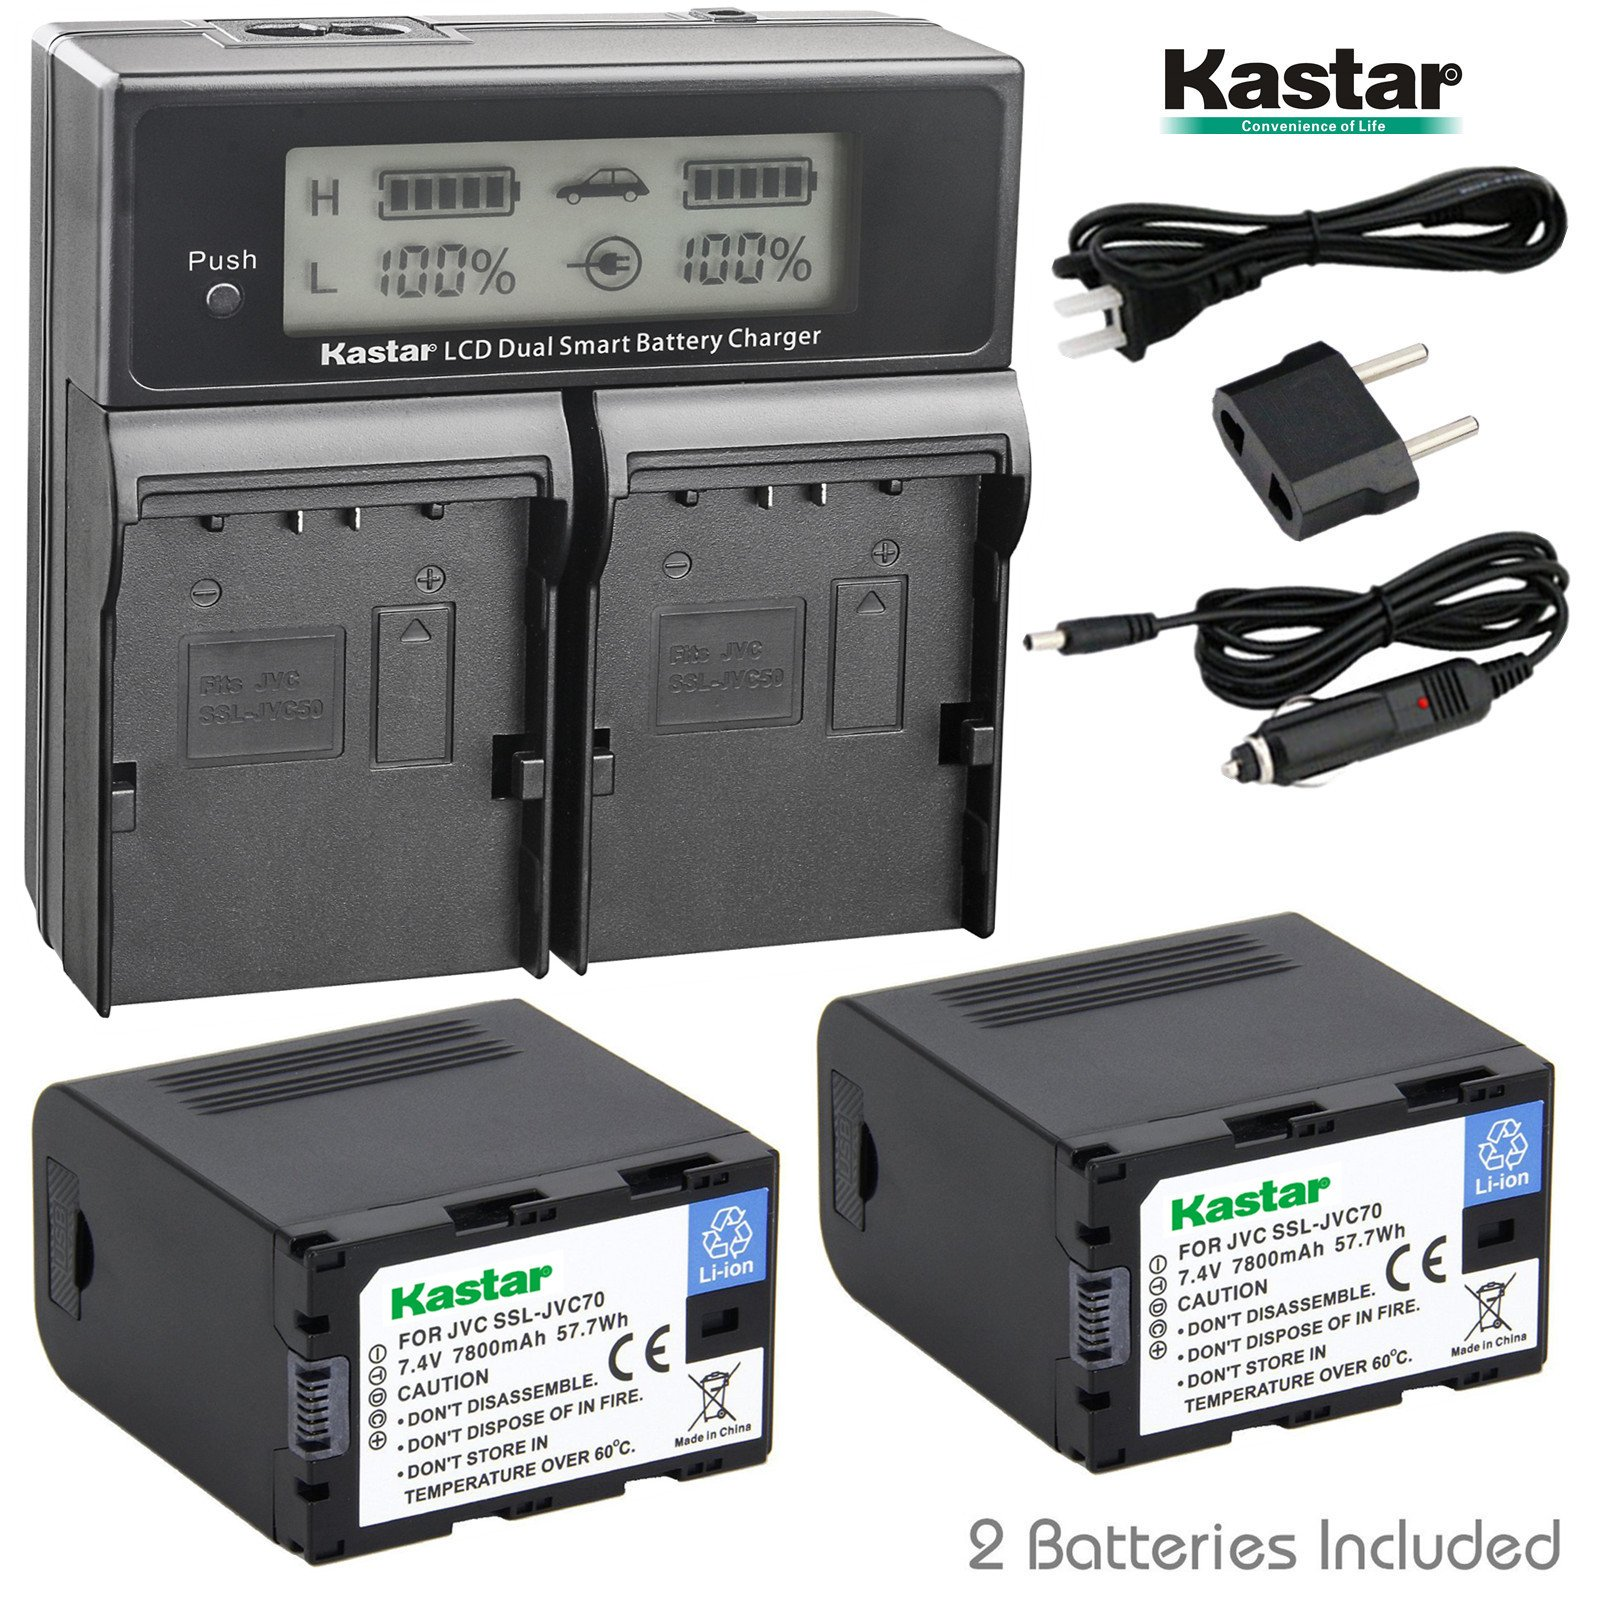 Kastar LCD Dual Fast Charger & Battery 2x for JVC SSL-JVC70 SSL-JVC75 BN-S8I50 GY-HMQ10 GY-LS300 GY-HM200 GY-HM200HW GY-HM200U GY-HM600 GY-HM600E GY-HM620U GY-HM650 GY-HM650SC GY-HM650U GY-HM660SC